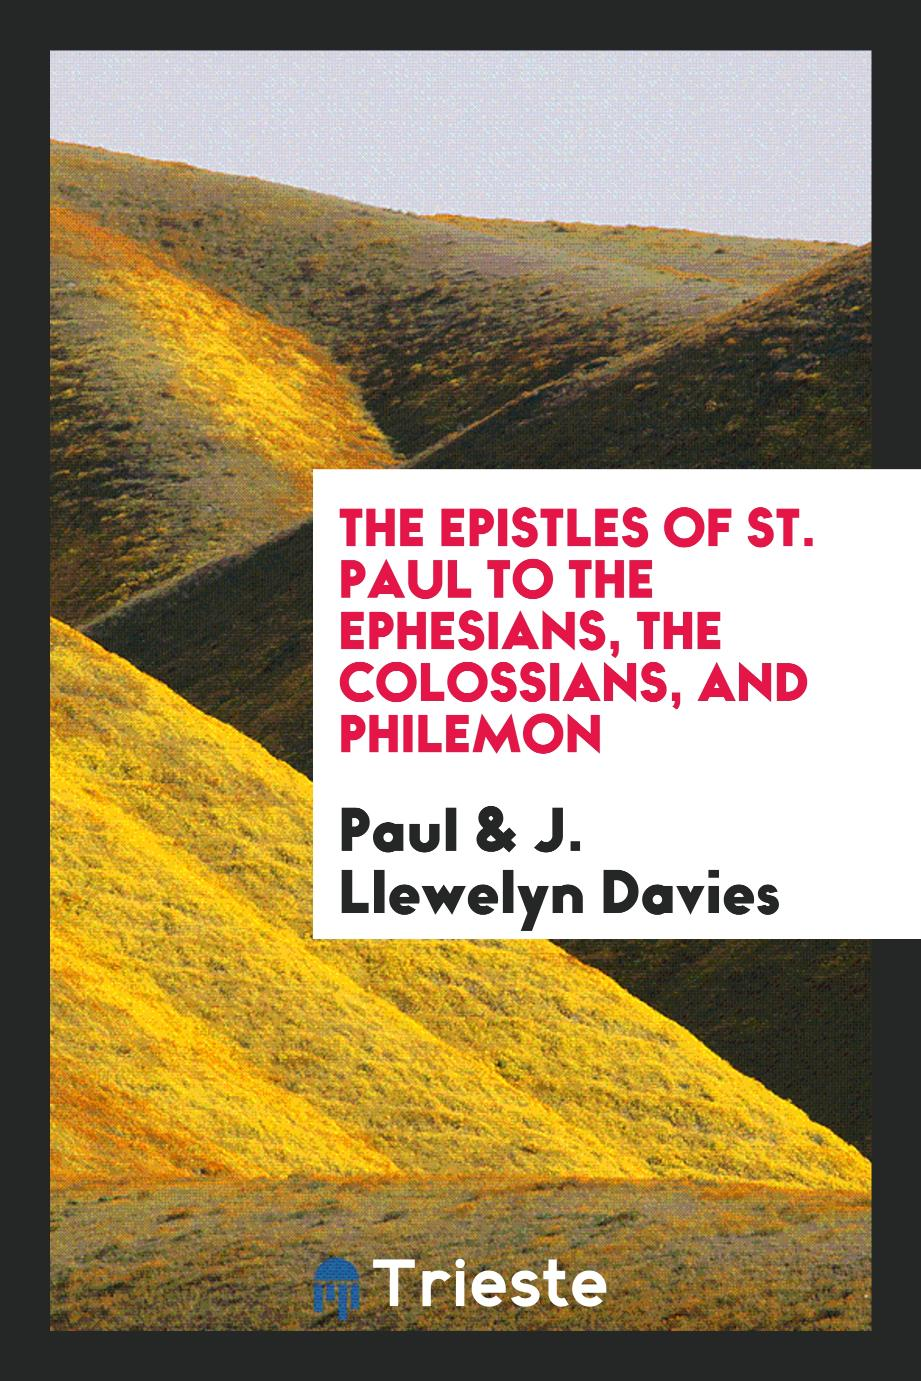 Paul, J. Llewelyn Davies - The Epistles of St. Paul to the Ephesians, the Colossians, and Philemon